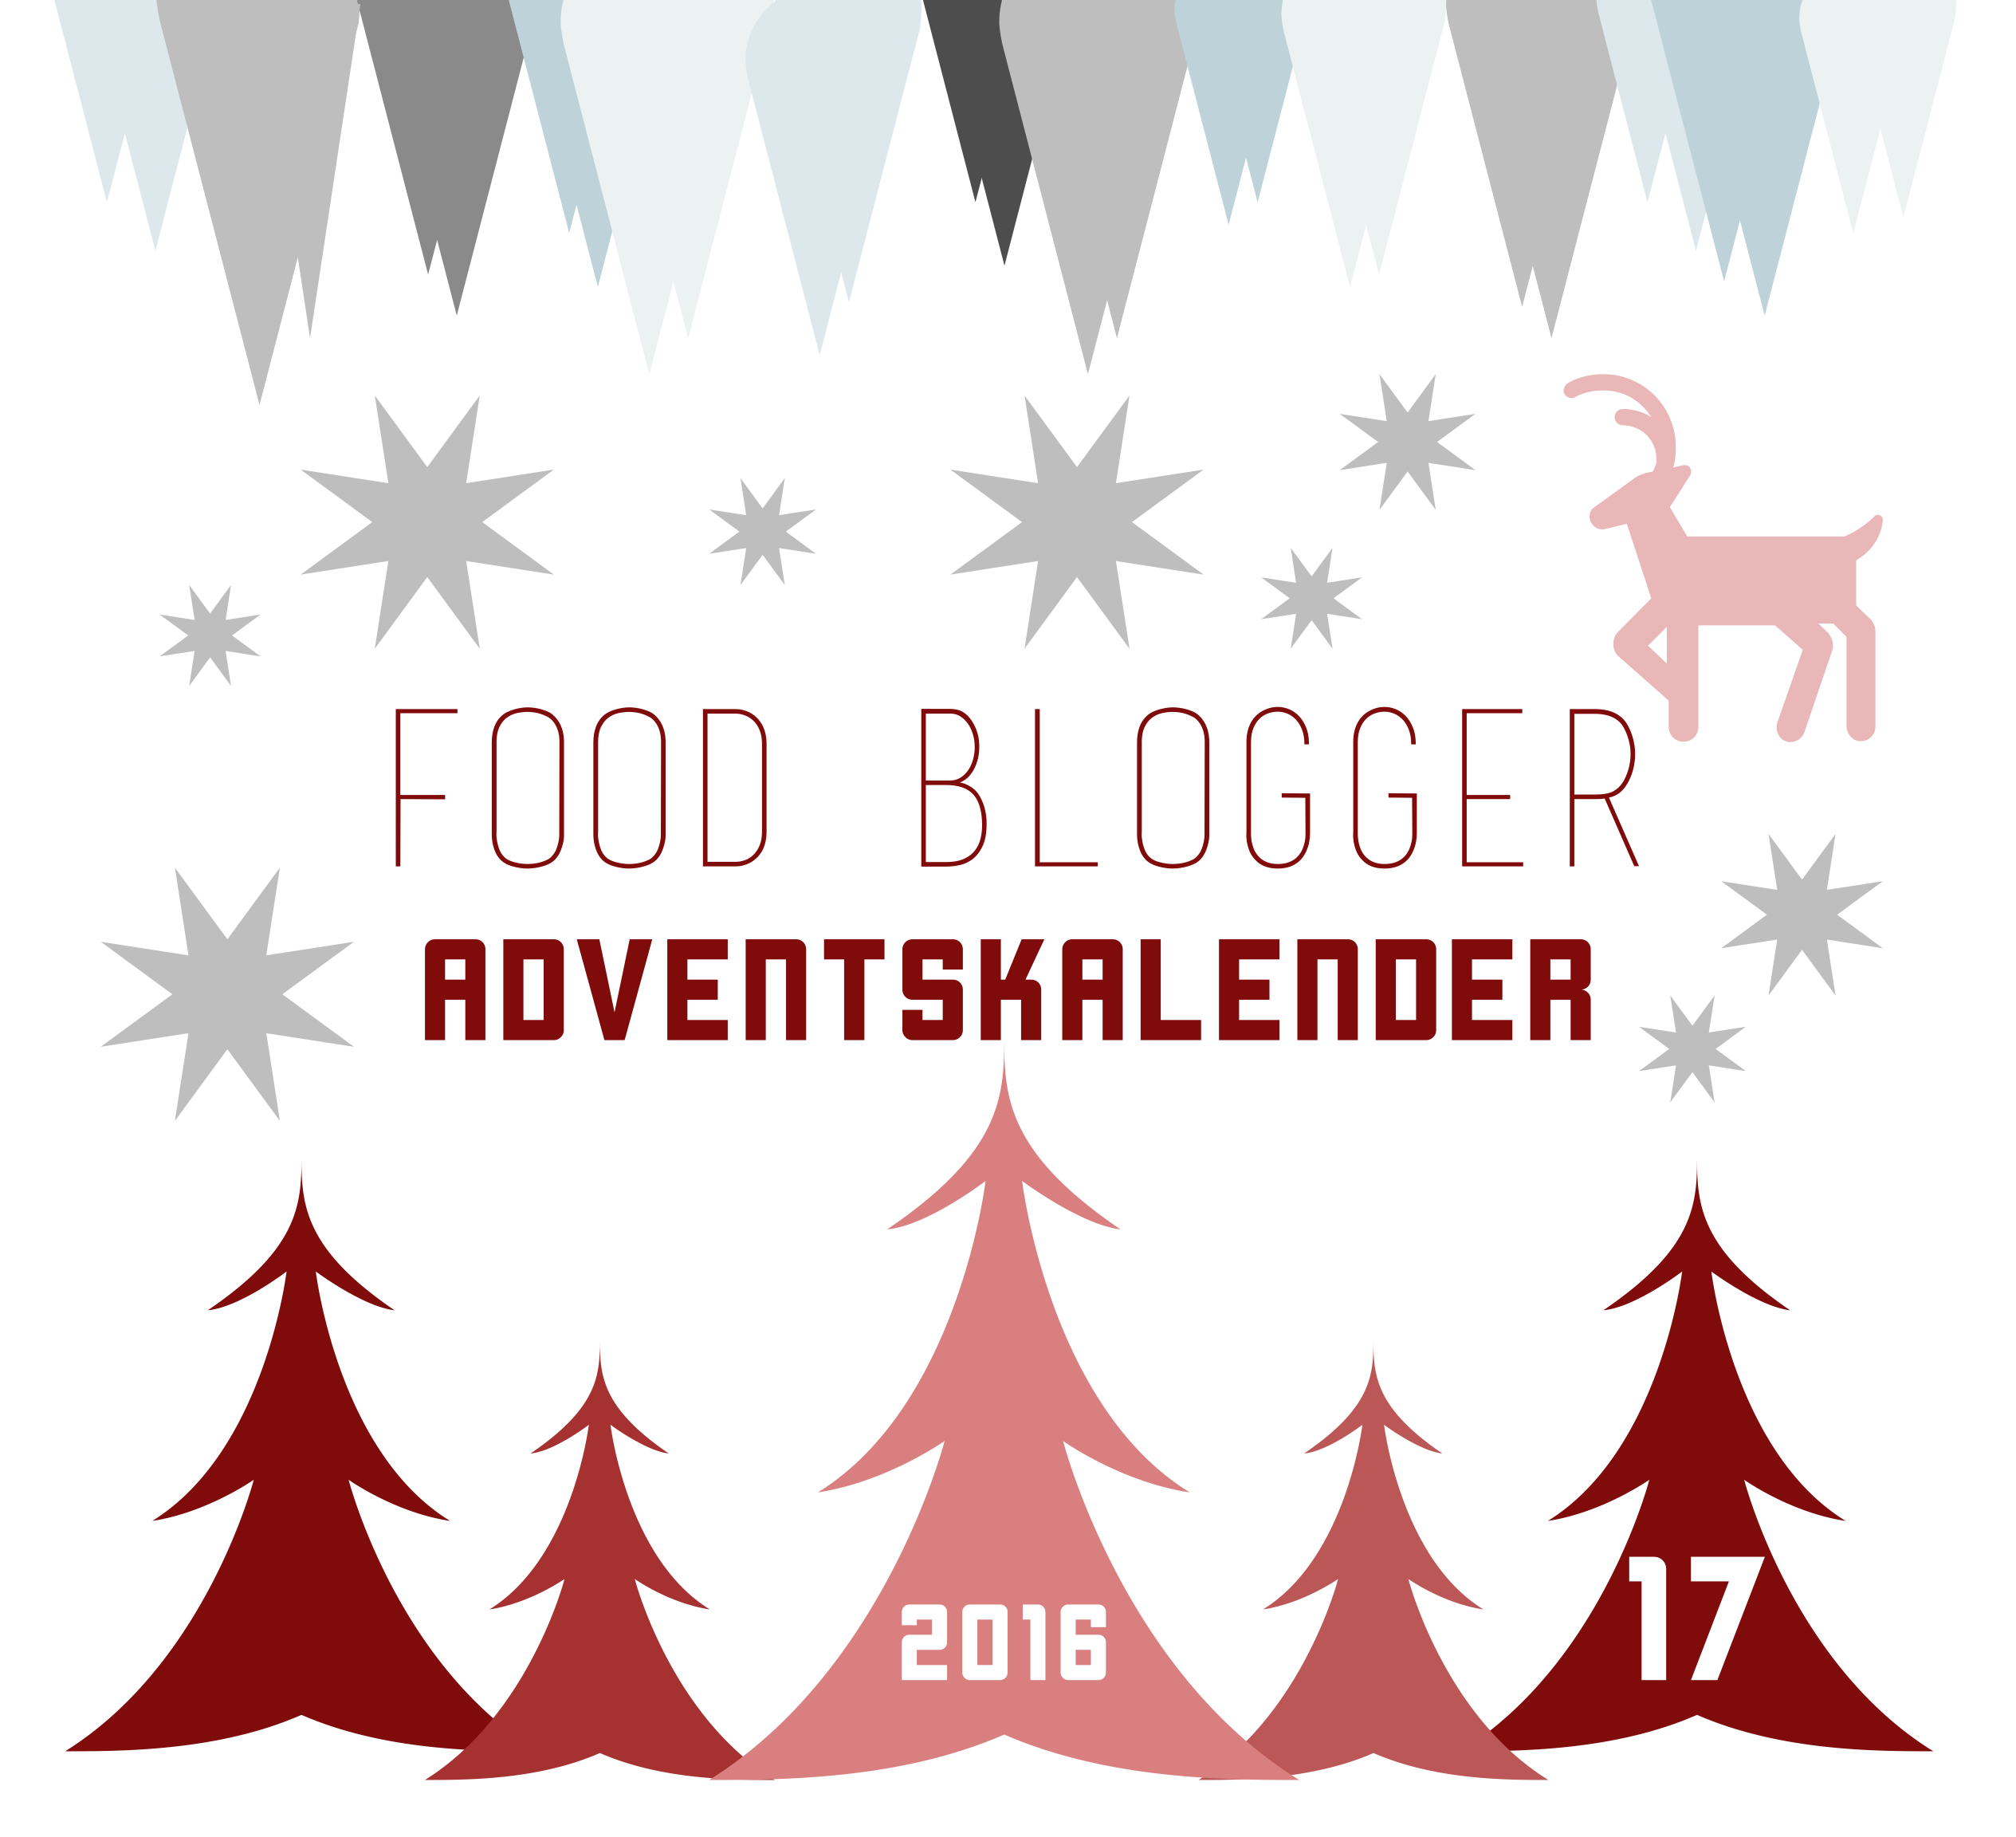 food blogger adventskalender 2017 - türchen 17